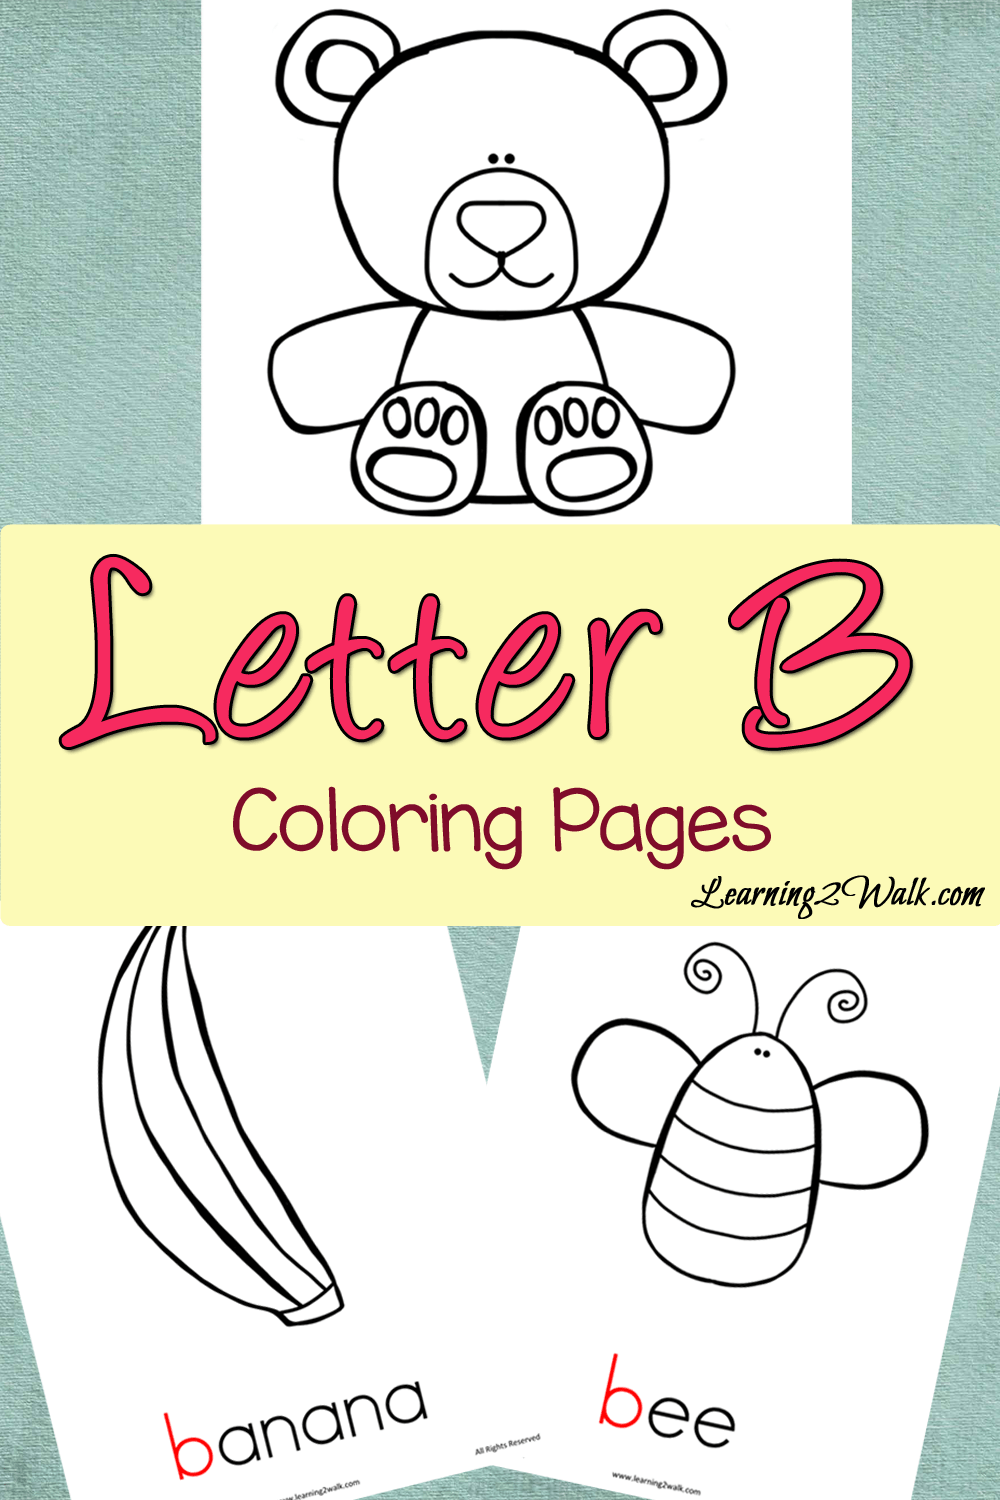 Preschool letter activities letter b colouring pages letter b